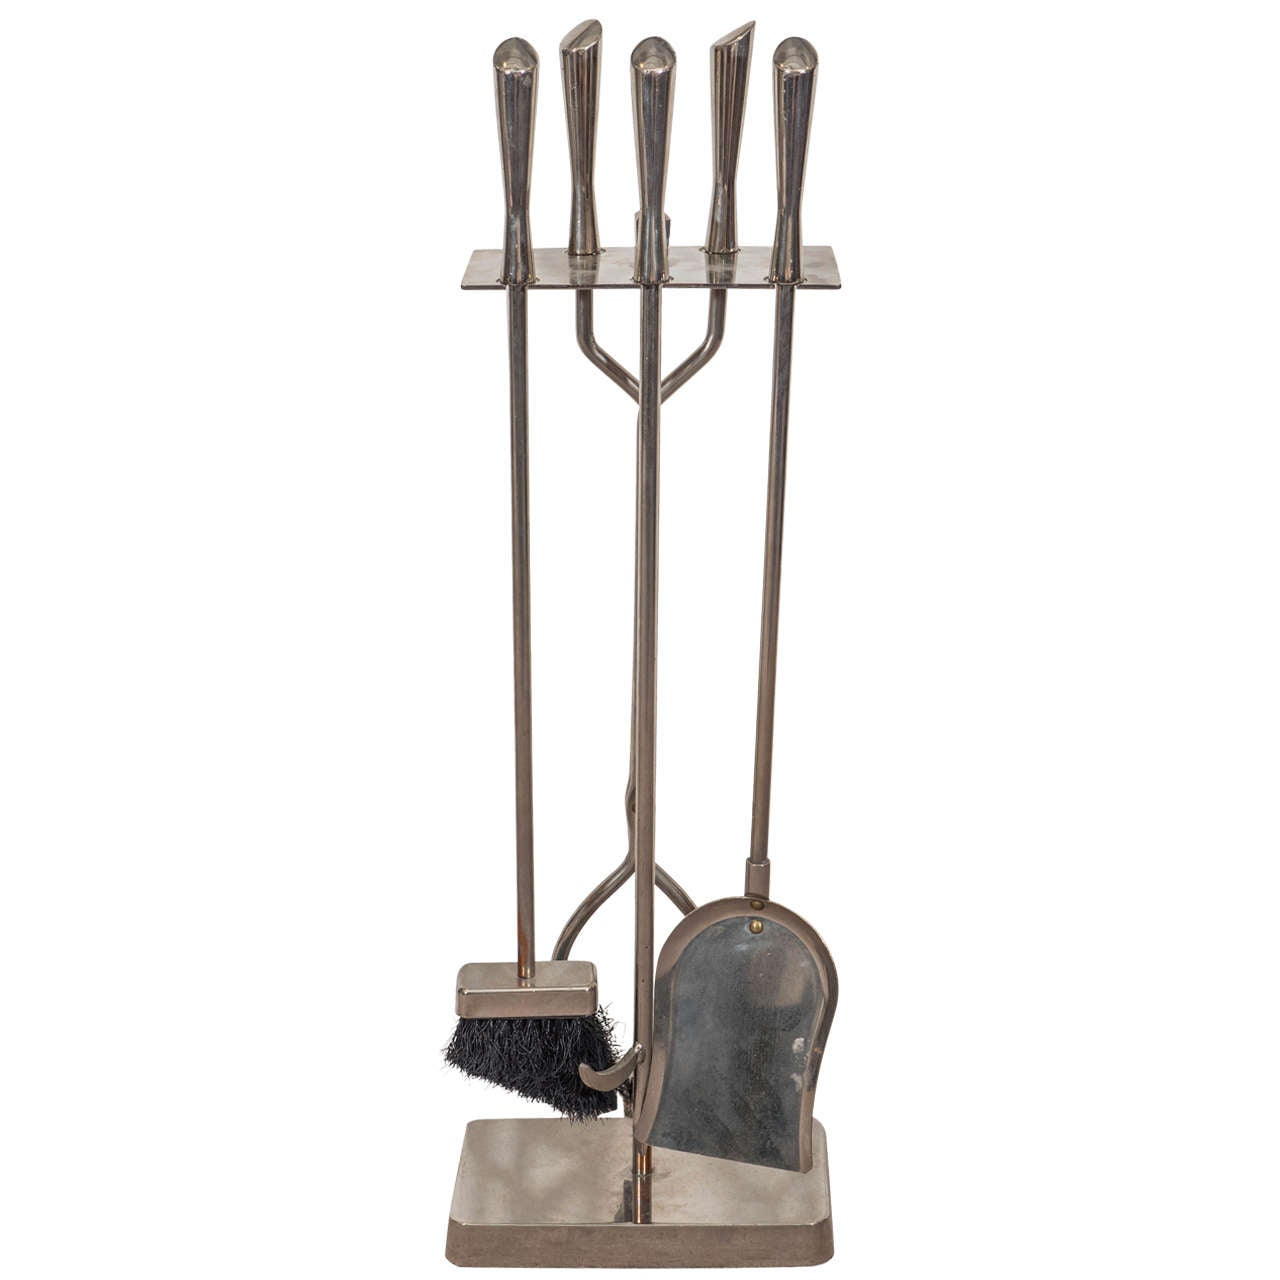 Set of Mid-Century Fireplace Tools in Chrome